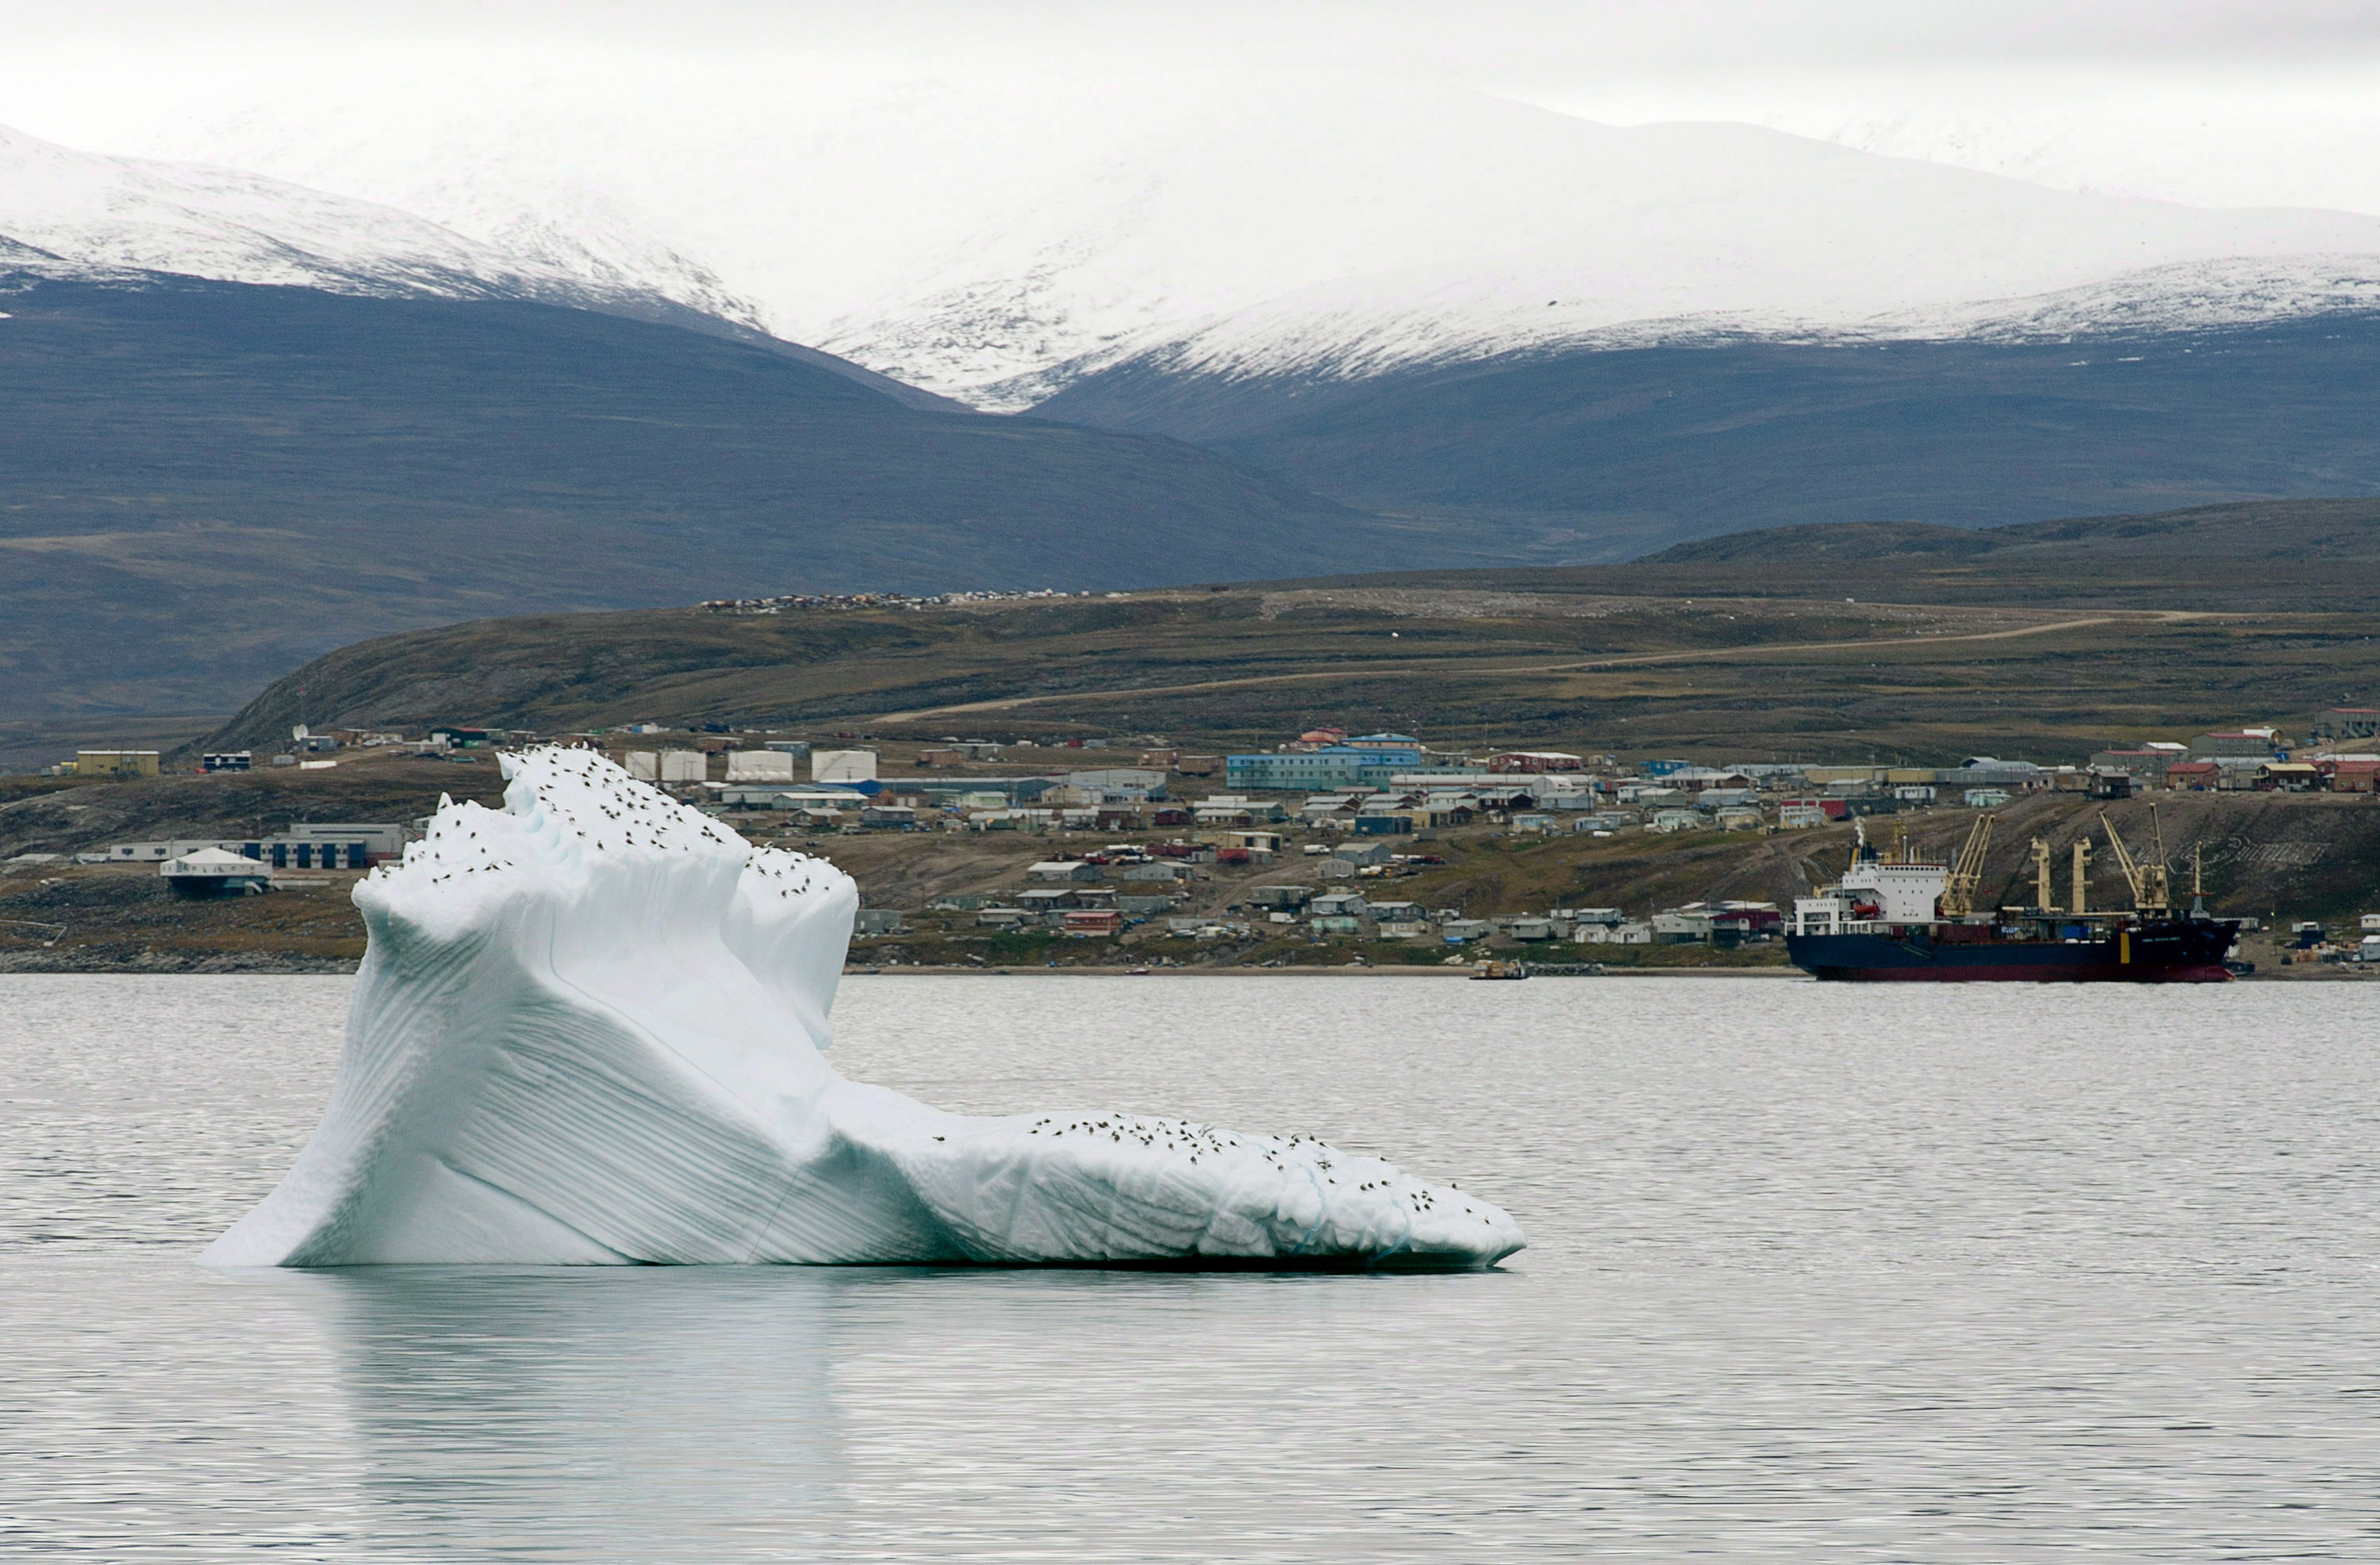 Ice floats past a cargo ship and the hamlet of Pond Inlet in Canada's eastern Arctic in August 24, 2014. (Adrian Wyld / The Canadian Press)